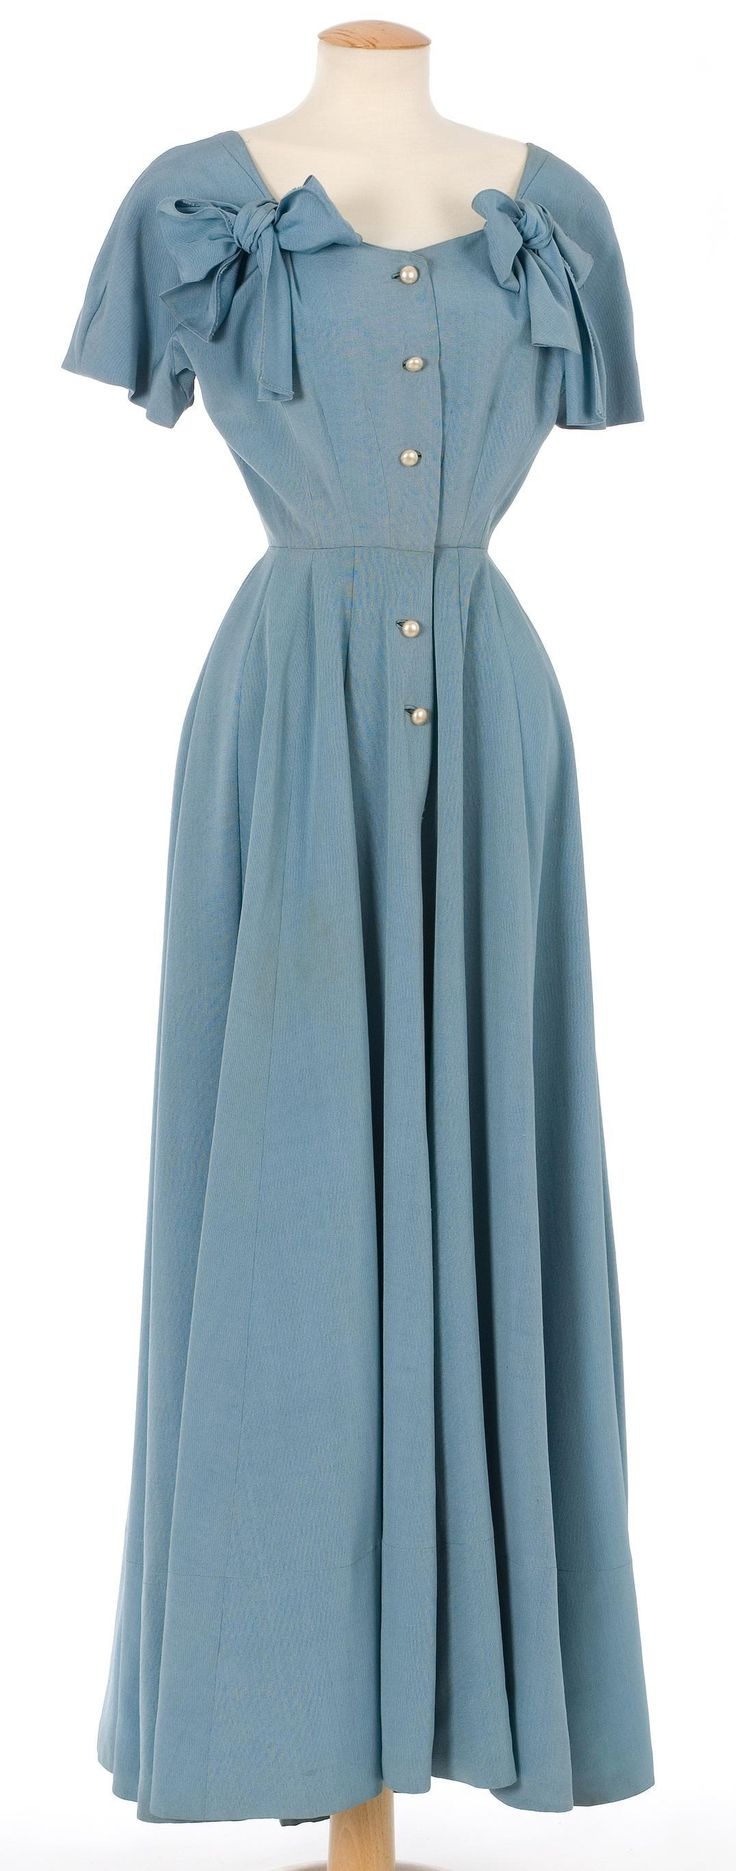 Adore! c.1940-1949 full length light blue dress with two bows. #vintage #1940s #fashion